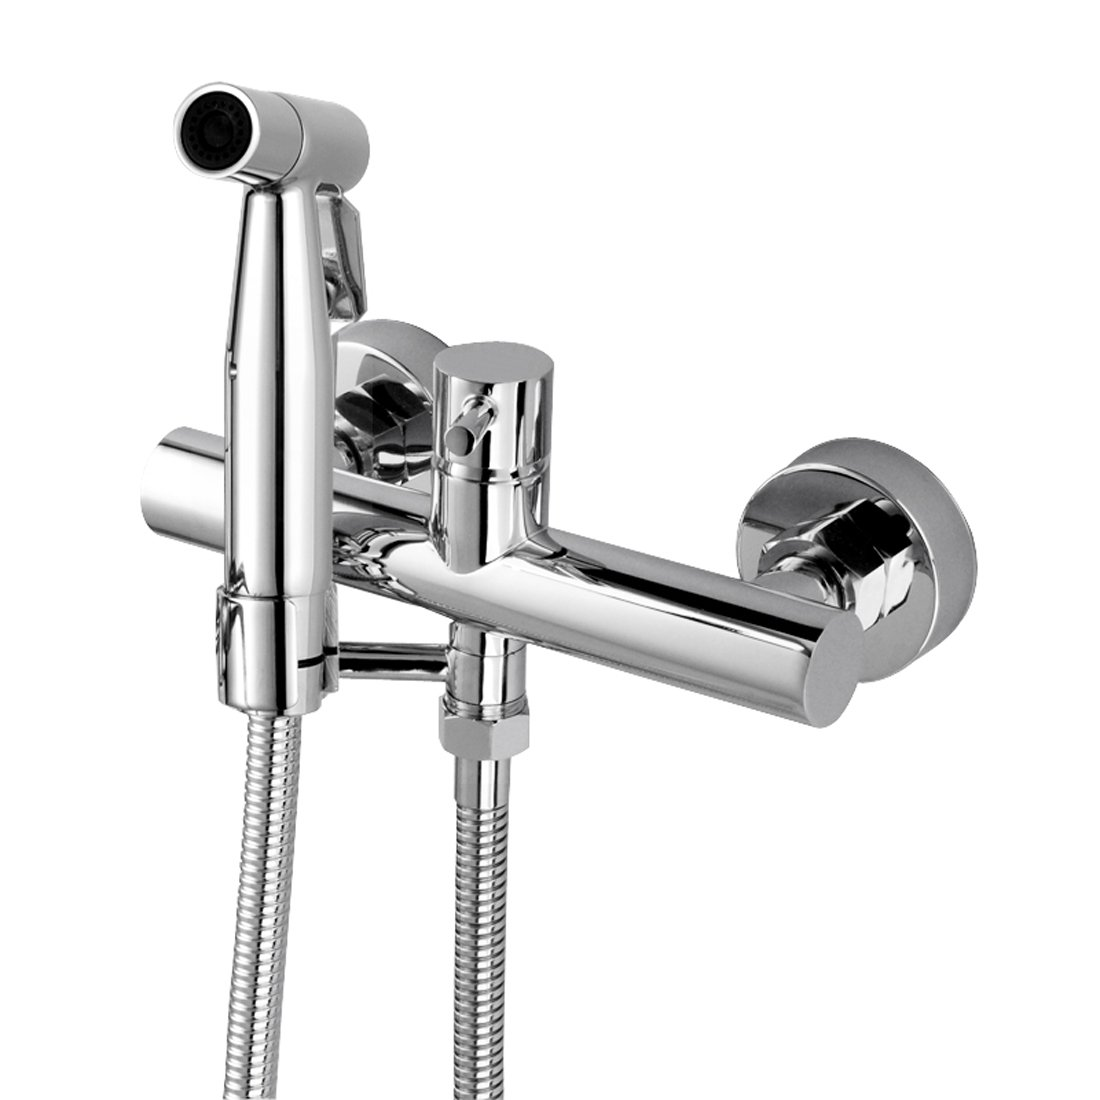 Bidet Wall Warm Water Stainless Steel Faucet Sprayer Attachment For Toilet mixed Bidet Faucet With Hot And Cold Water Single Handle Wall Mount Bidet Sprayer